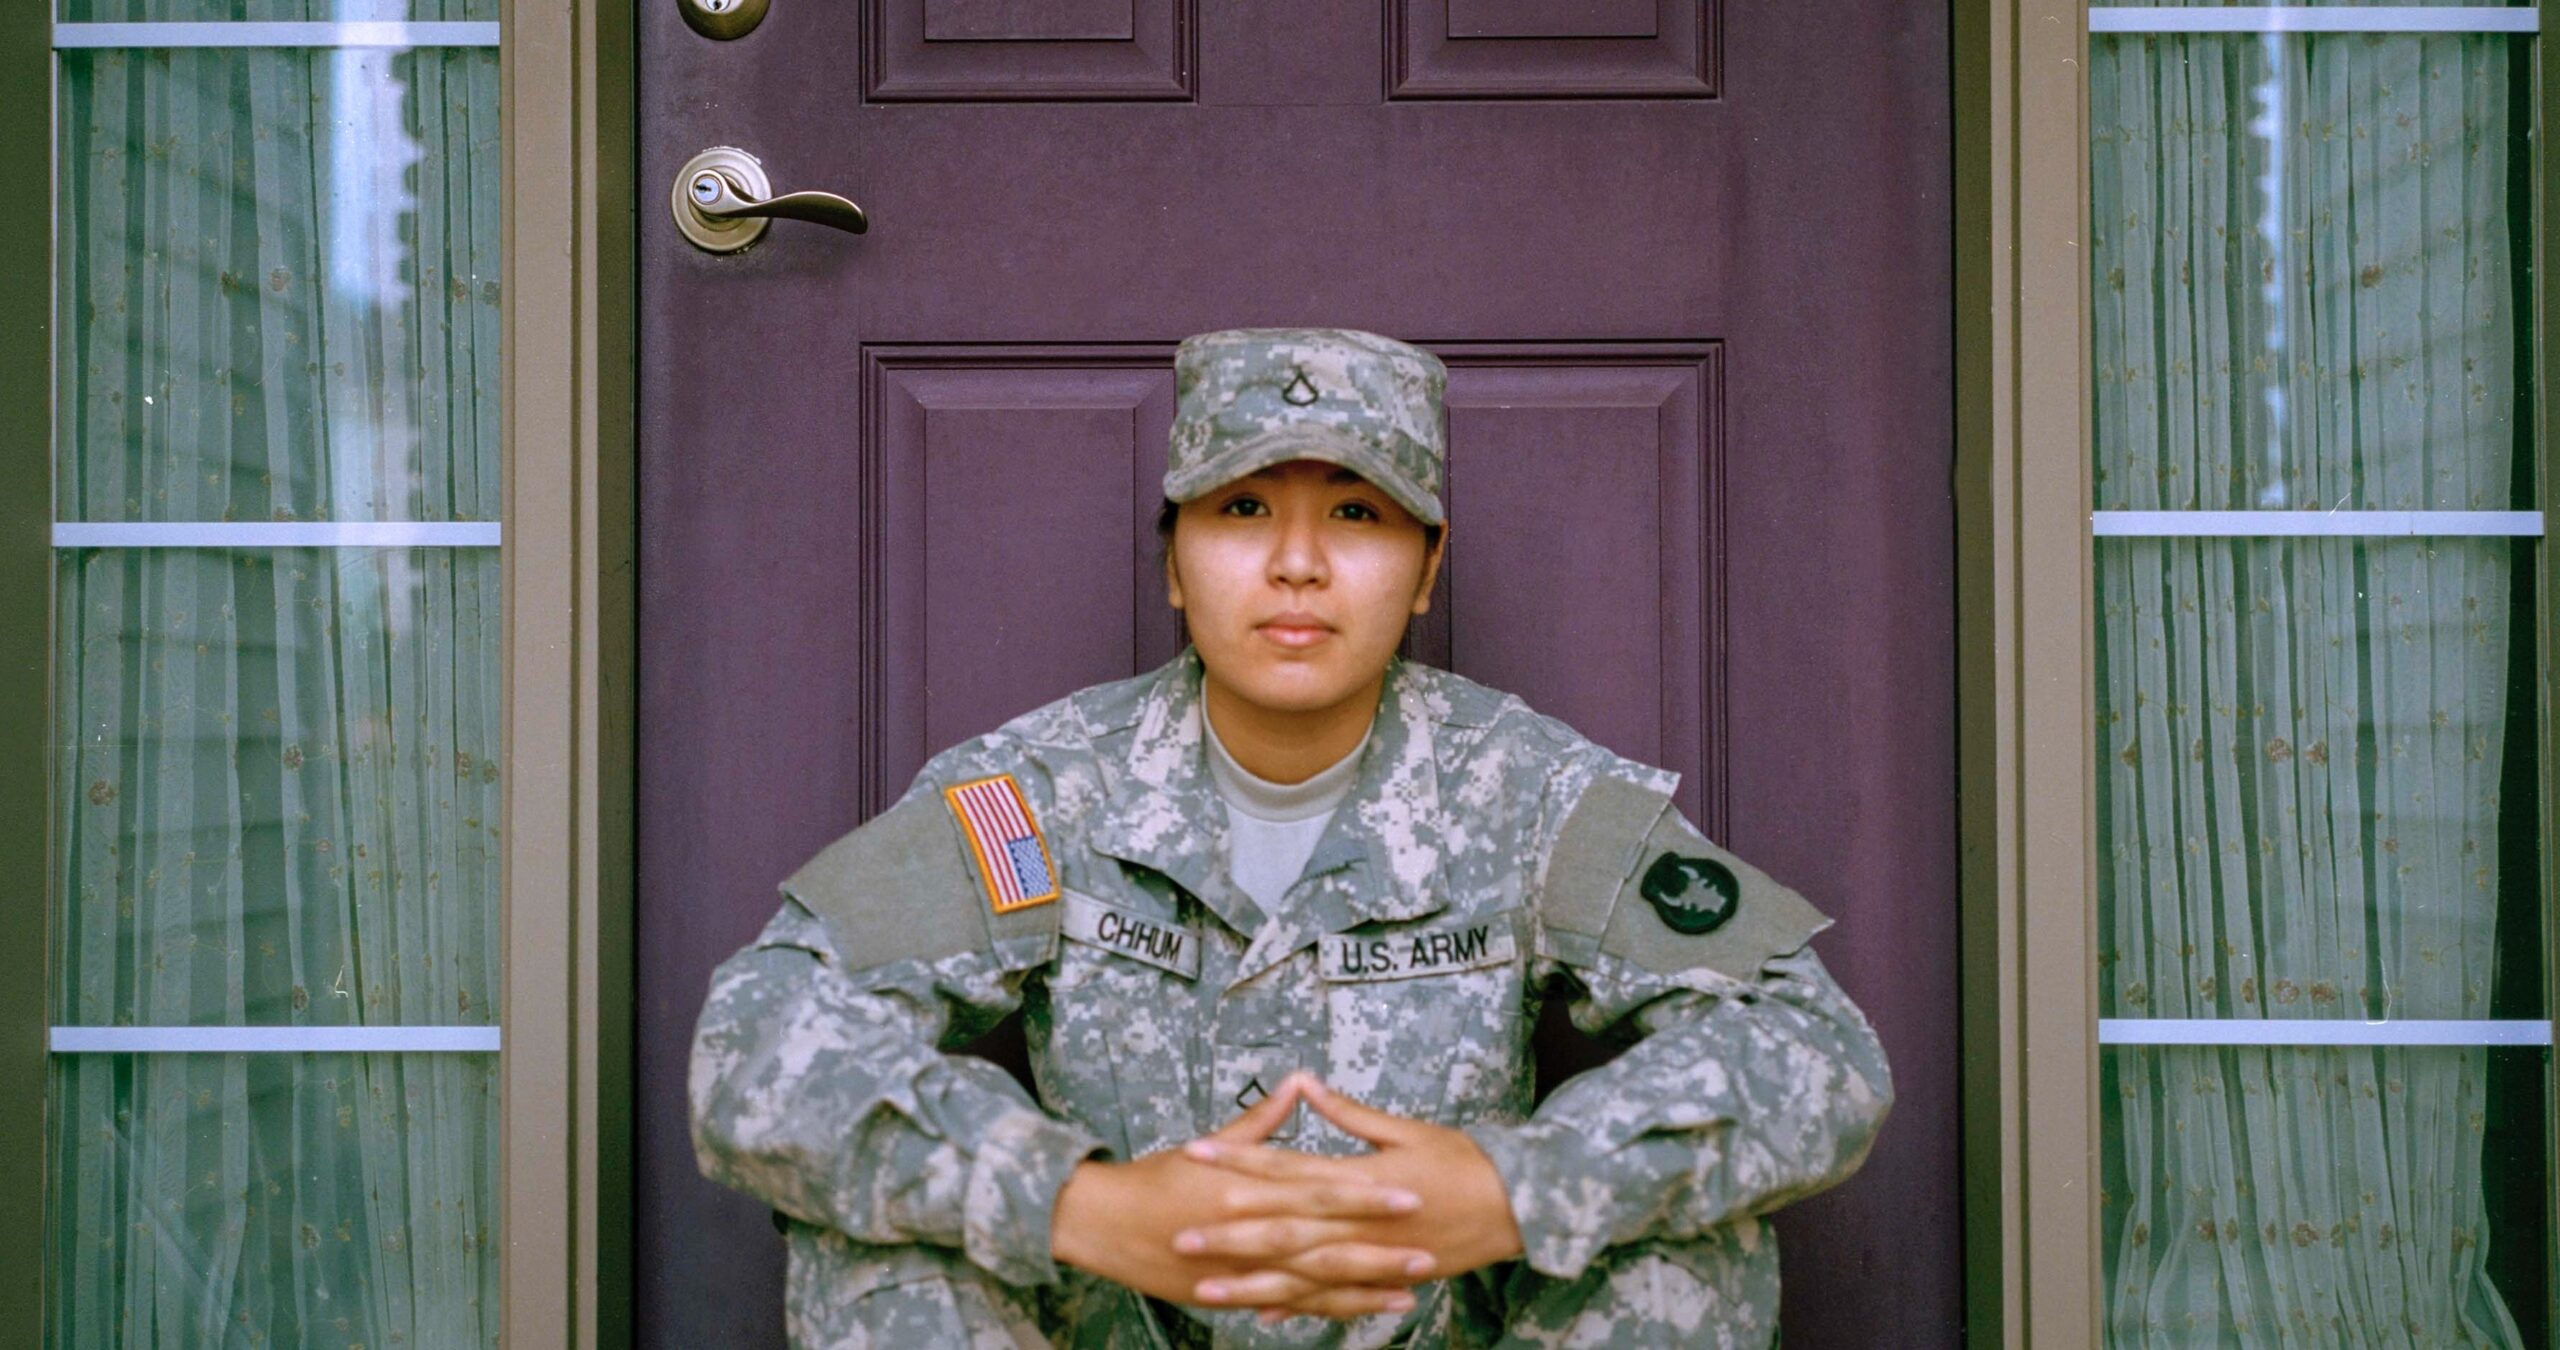 A woman who is part of a military couple sits in front of a door.